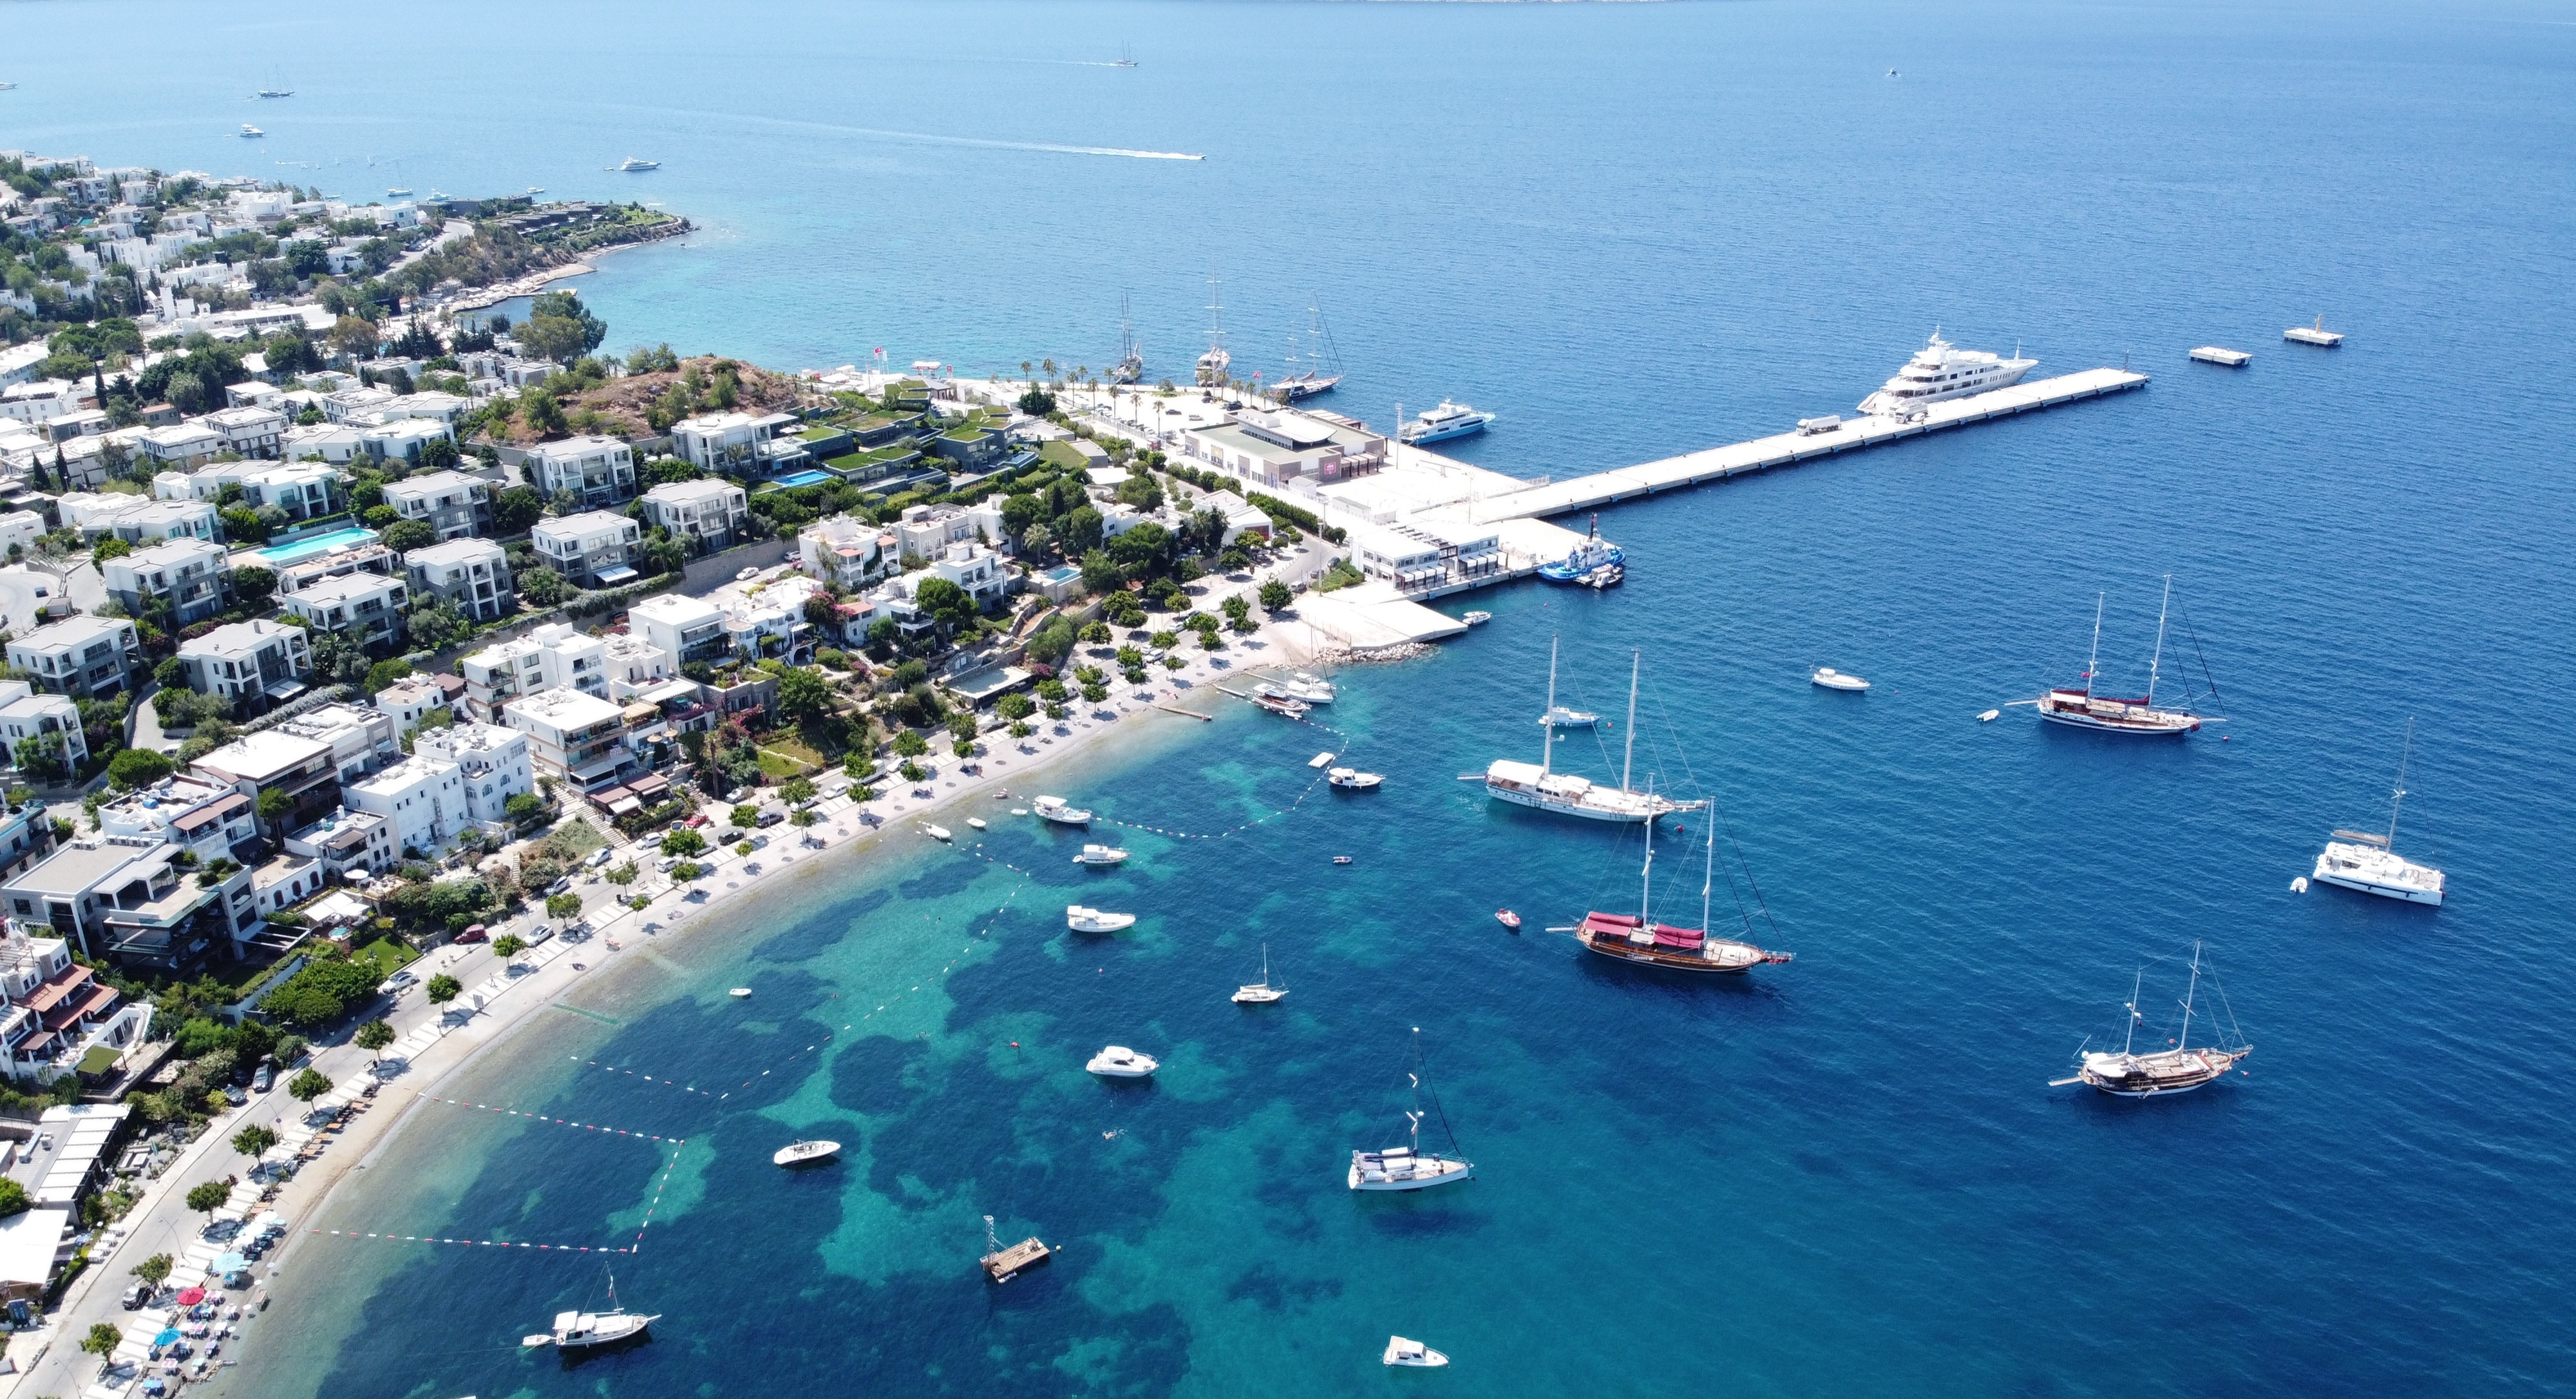 Holidays to Bodrum and Antalya are in high demand